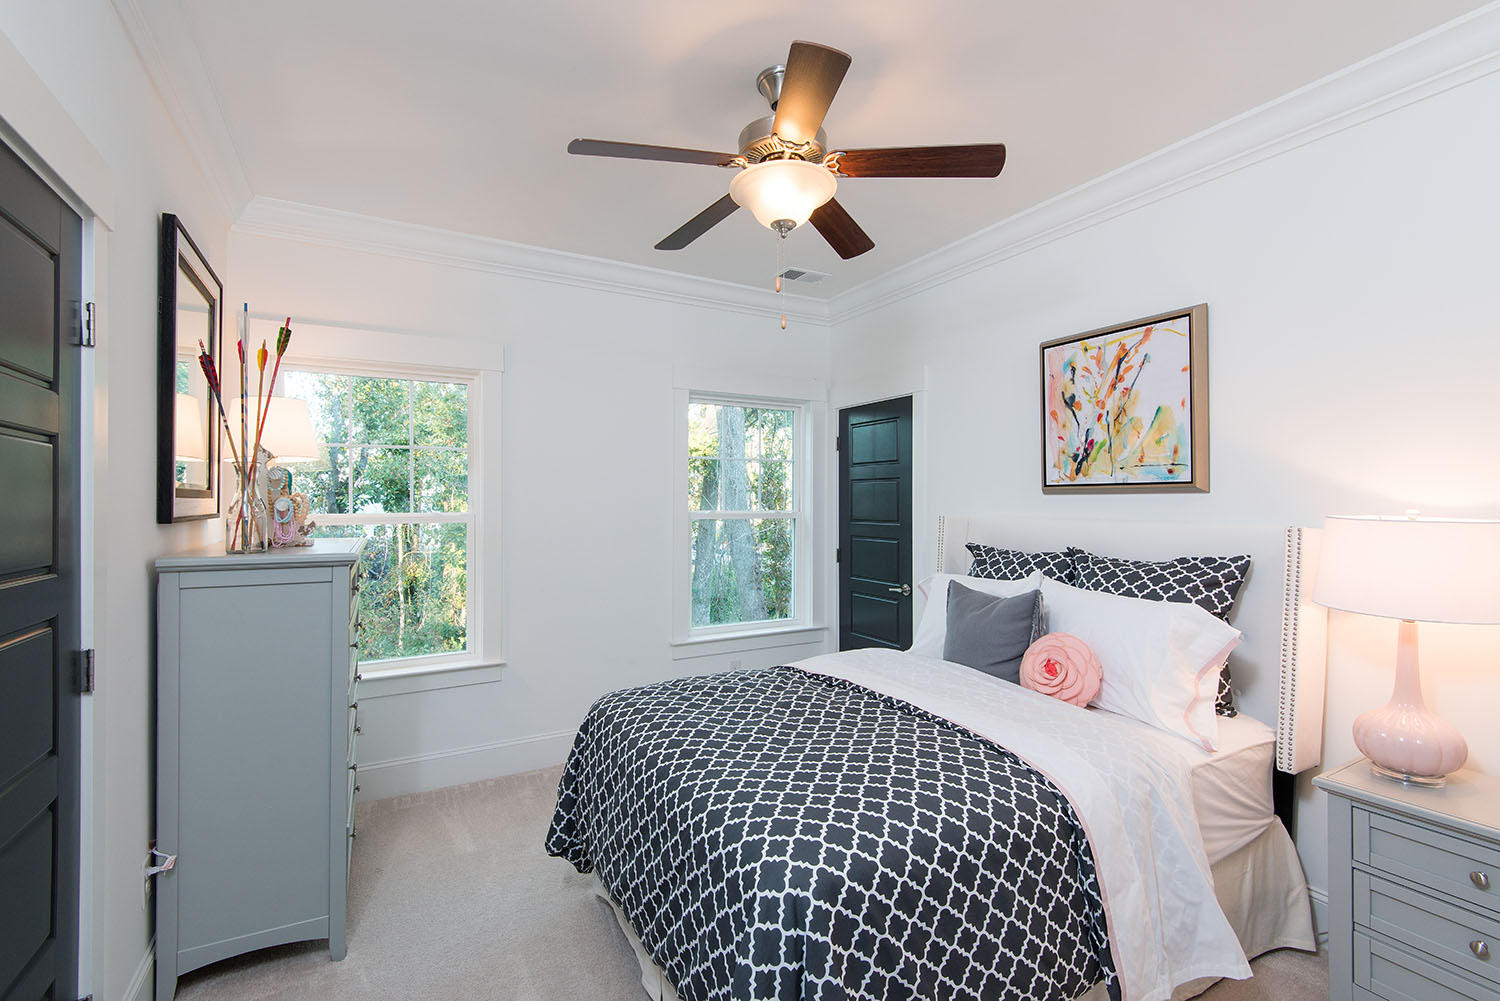 The Village at Stiles Point Homes For Sale - 869 Shutes Folly, Charleston, SC - 8